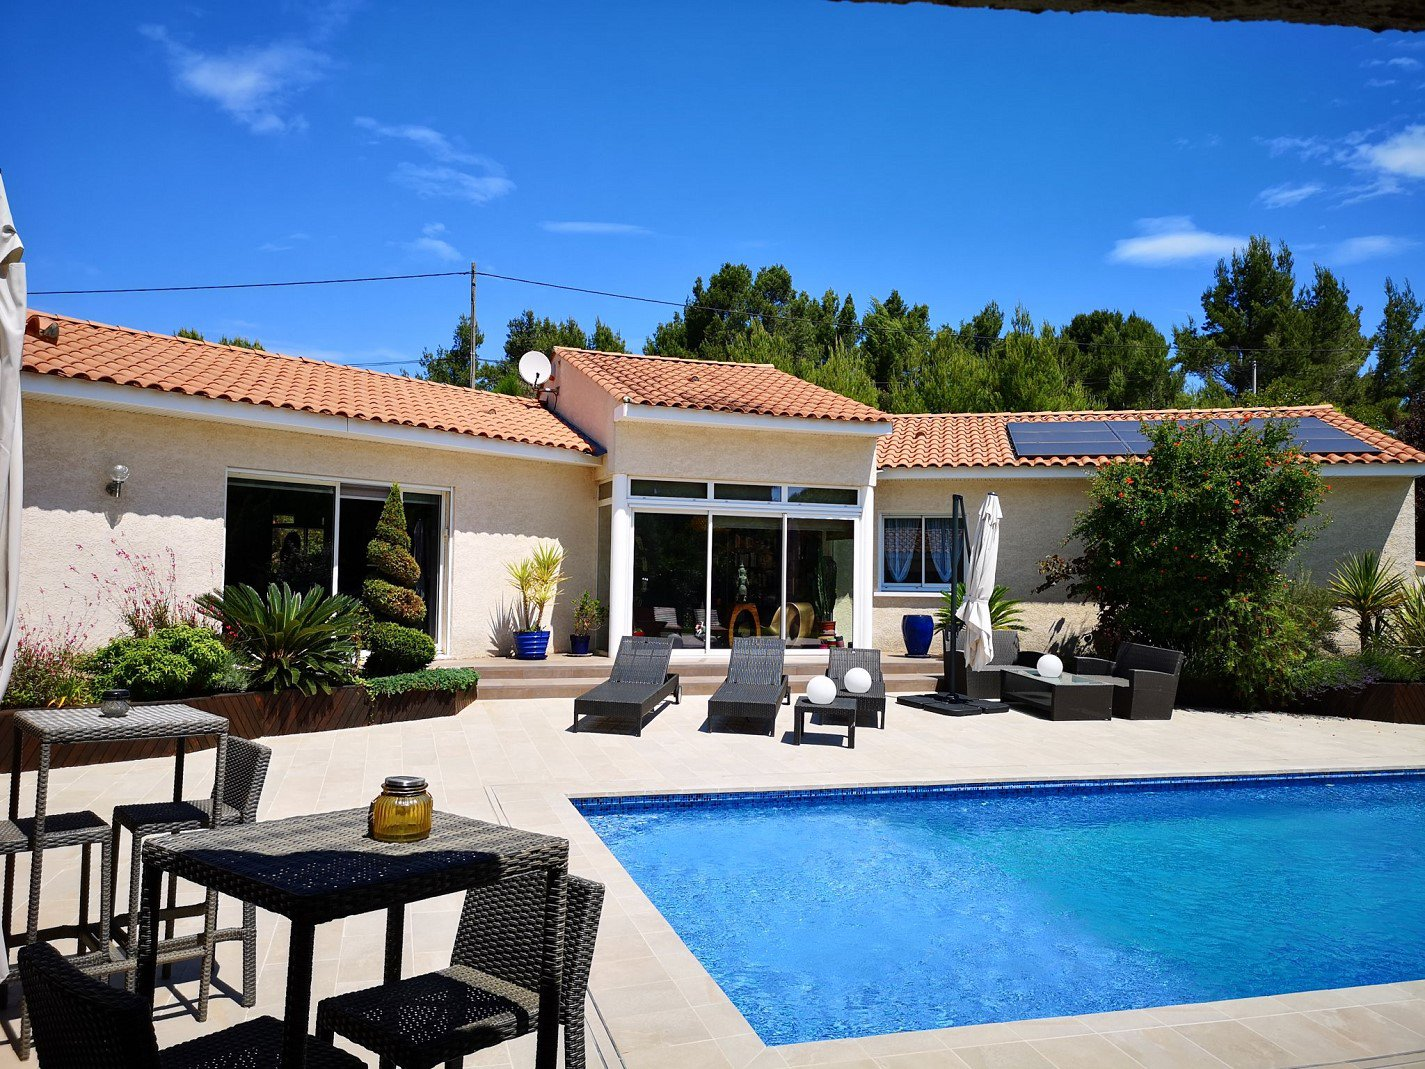 Villa with pool in a beautiful setting